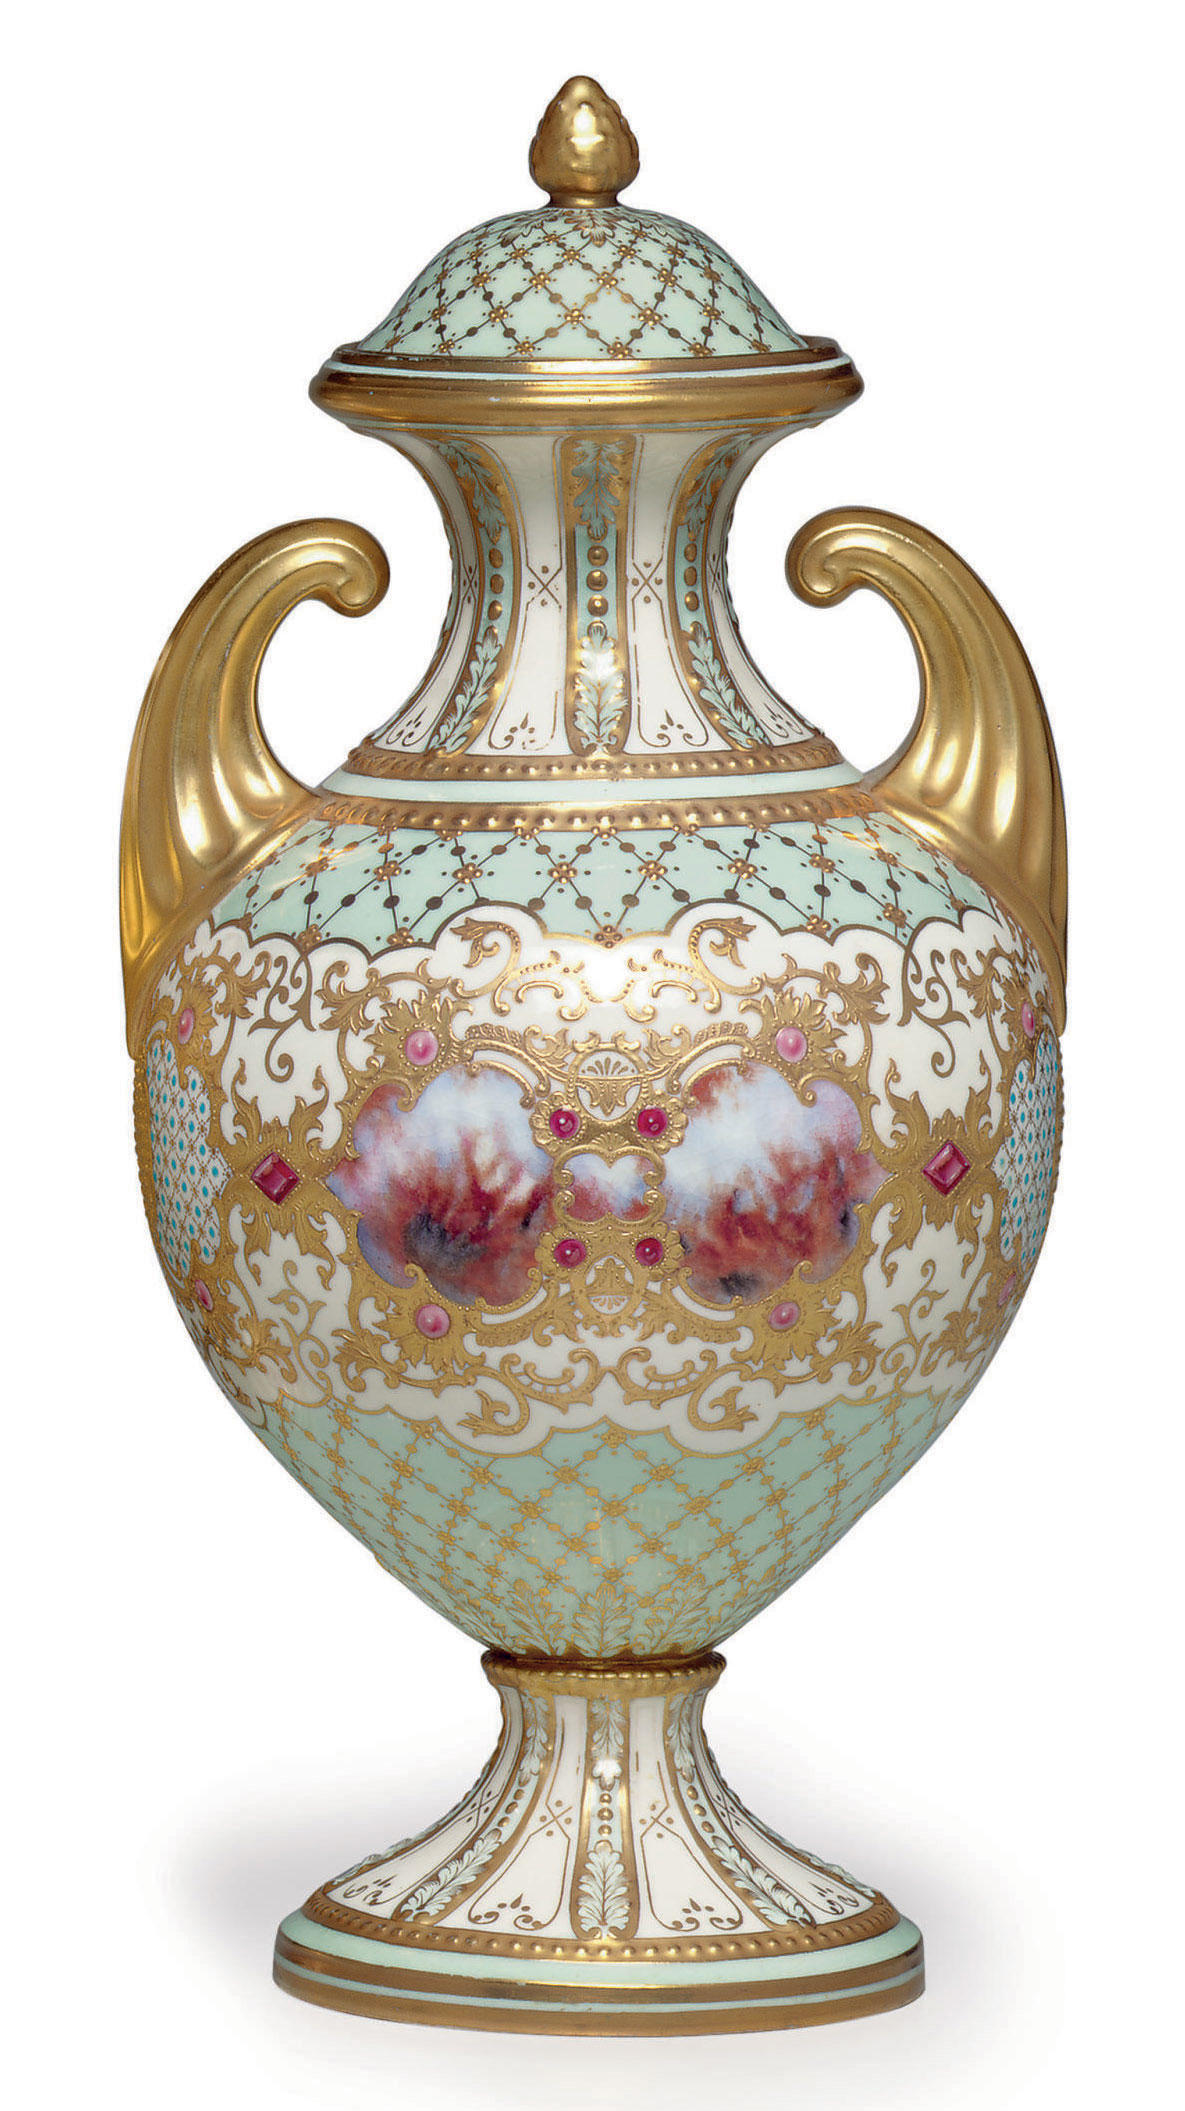 A COALPORT PORCELAIN 'JEWELED' PALE-BLUE AND WHITE GROUND VASE AND COVER